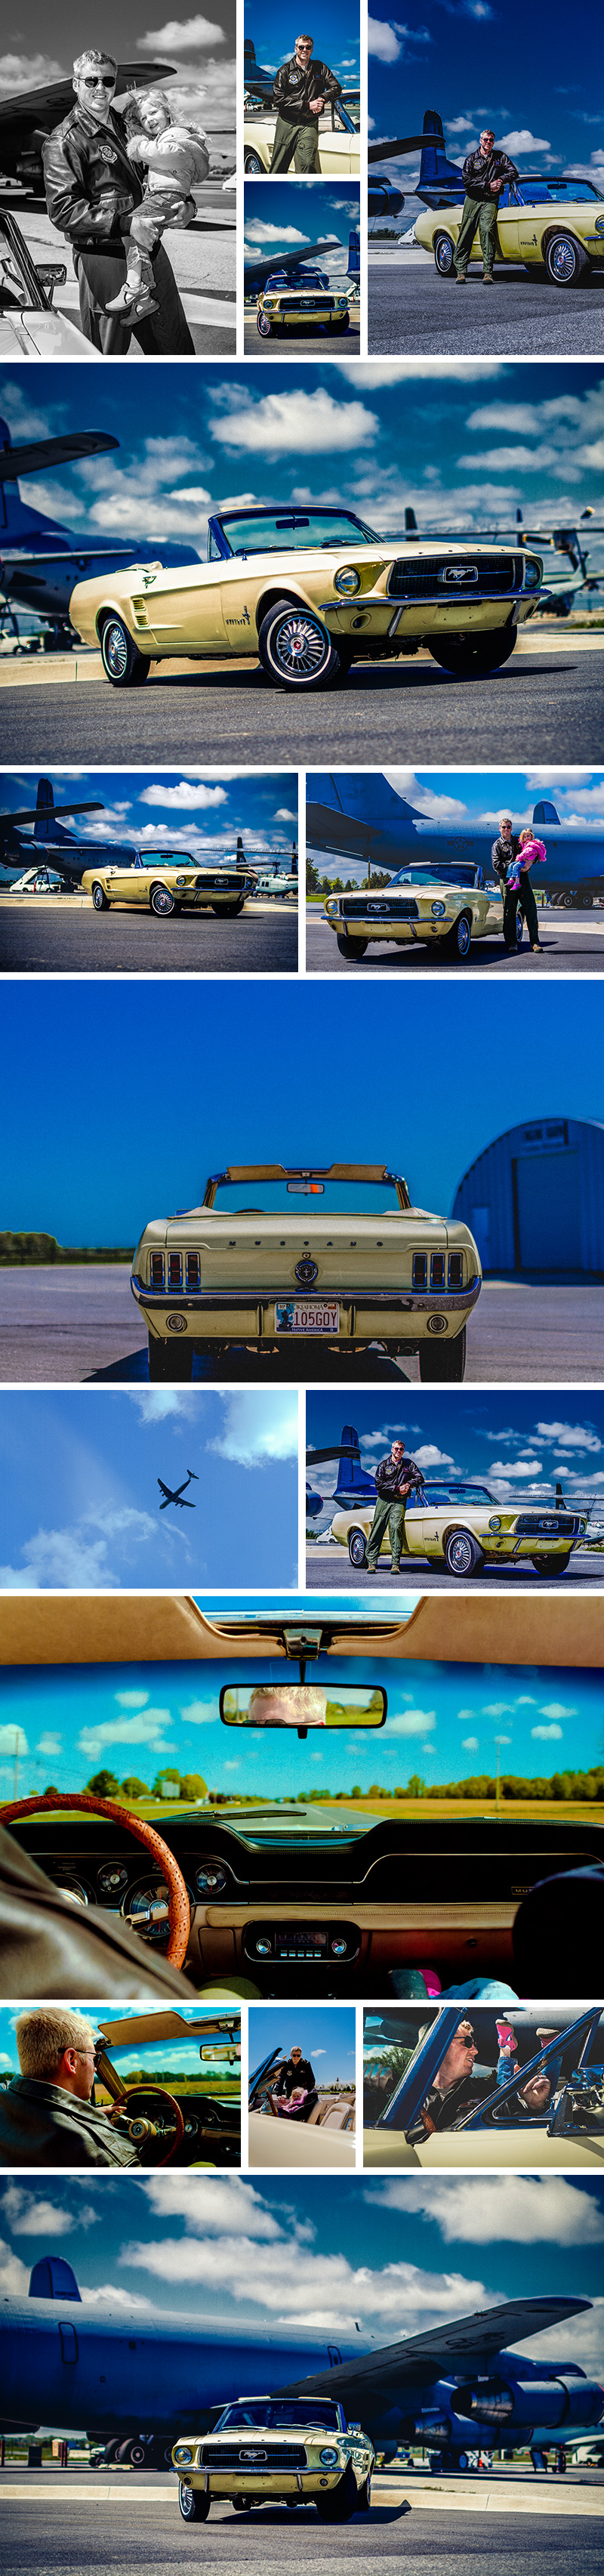 Ford Mustang shoot with Captain Brian Trumble at Dover Air Force base and museum